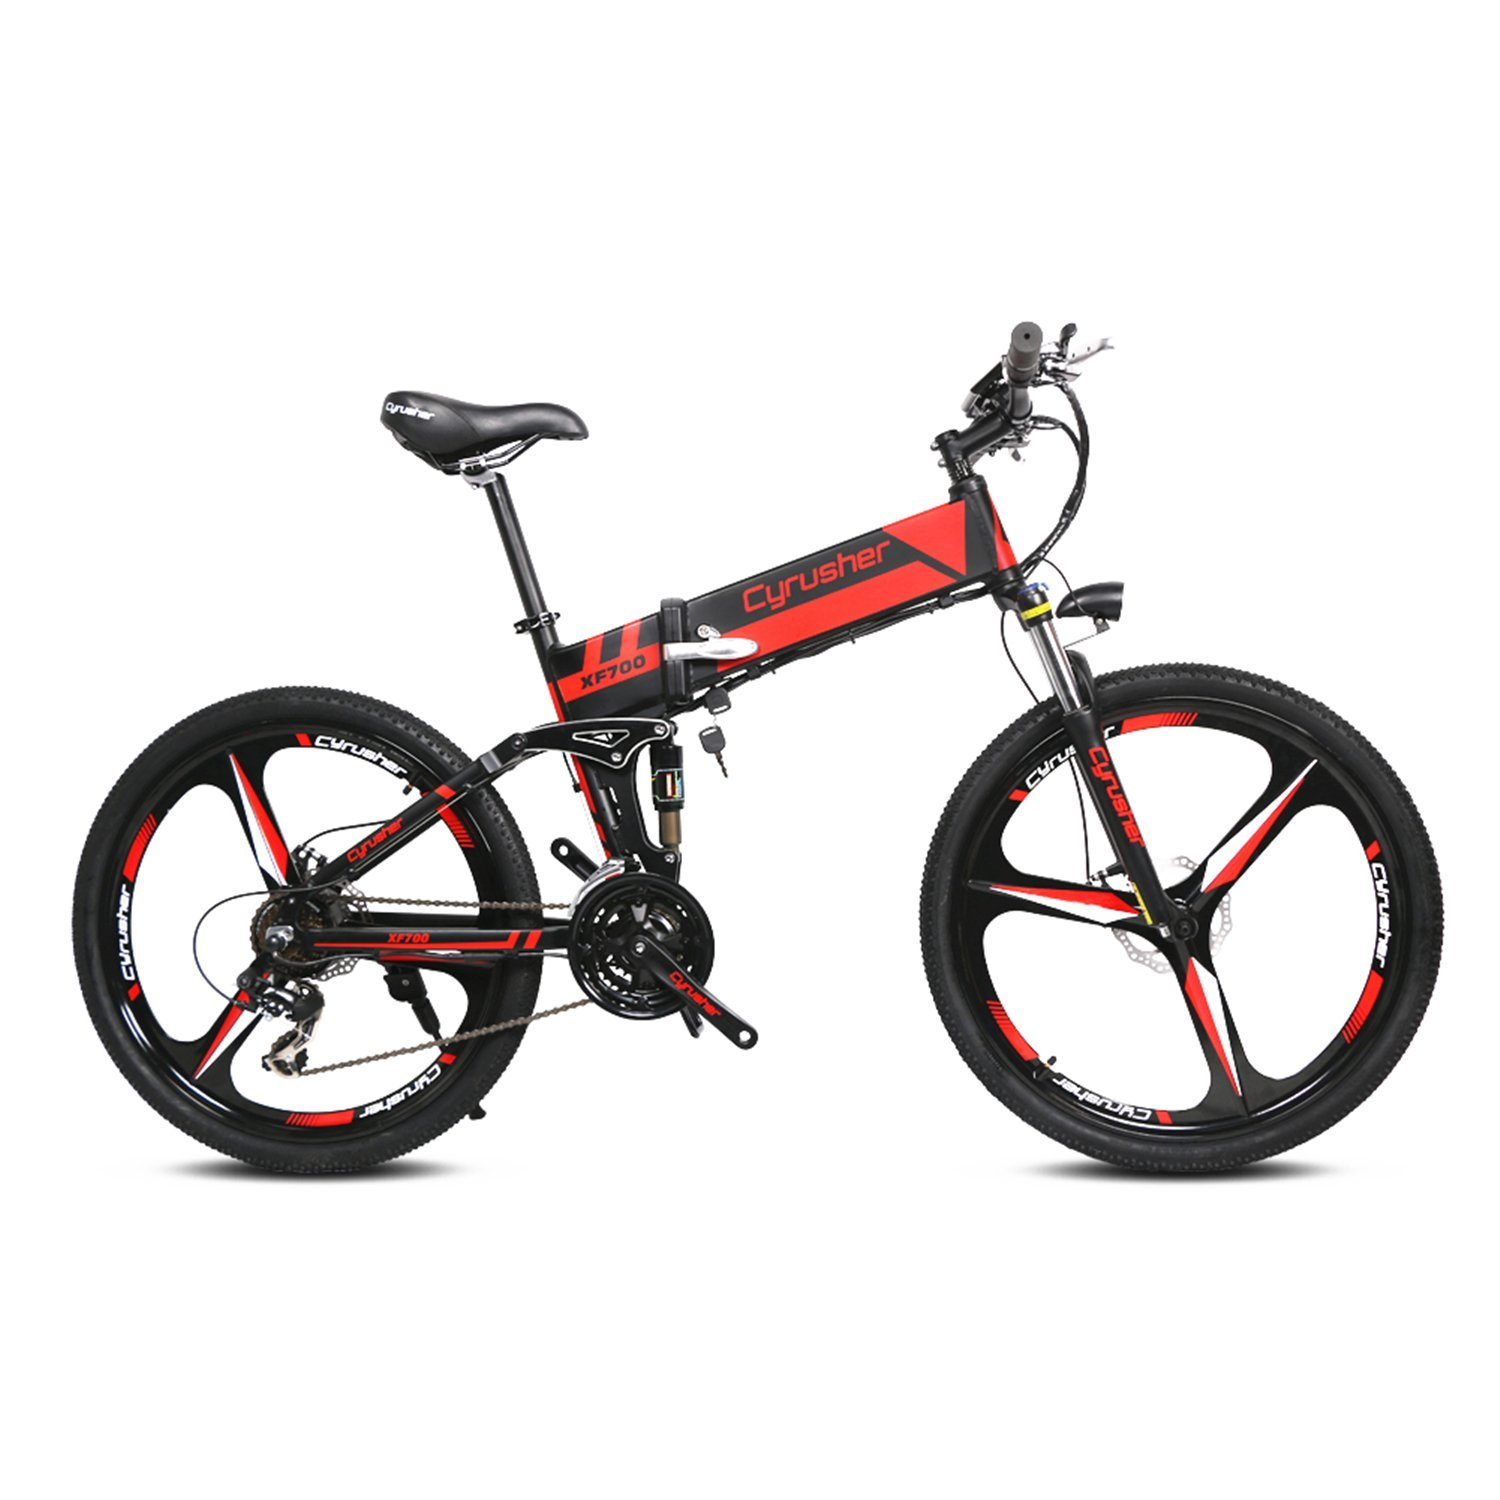 Cyrusher XF700 Folding Electric Bikes For Man 26 inch Mountain Bicycle For Man Full Suspension 36V 10.4AH Hidden Battery Shimano 21 Speeds Double Mechanical Disc Brake Halloween Gift For Man